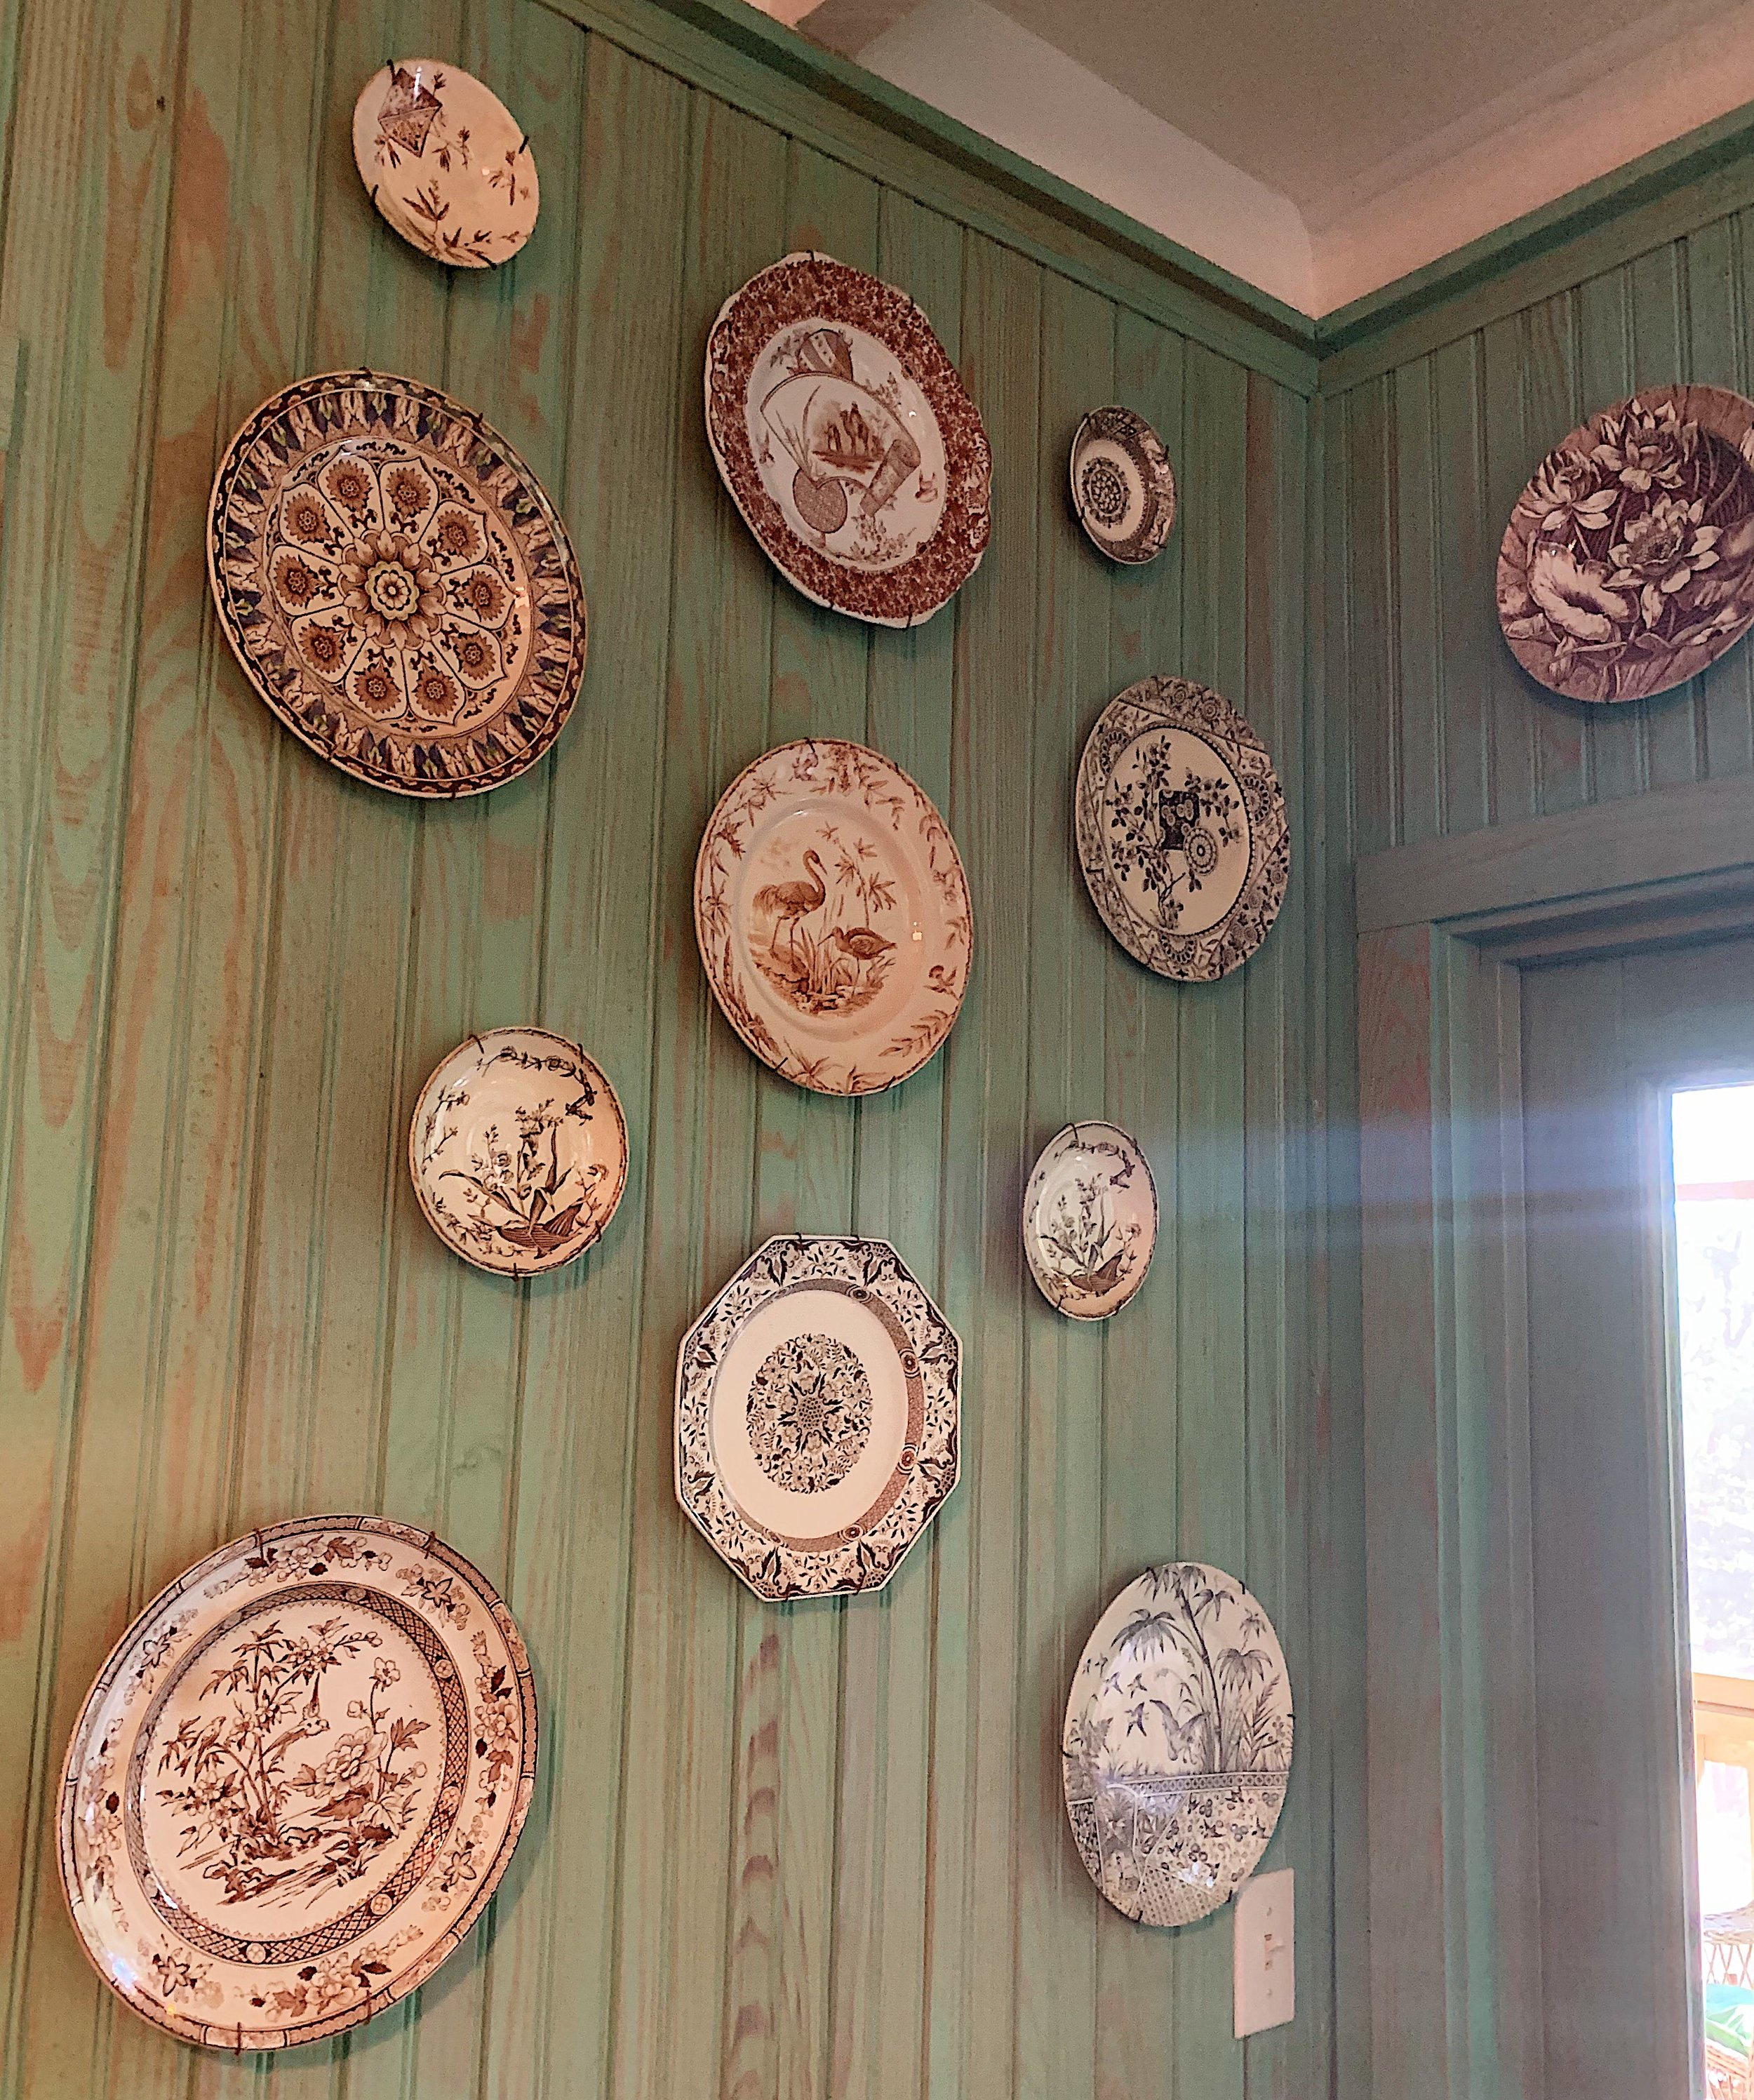 Some more examples of Transferware on Porcelain